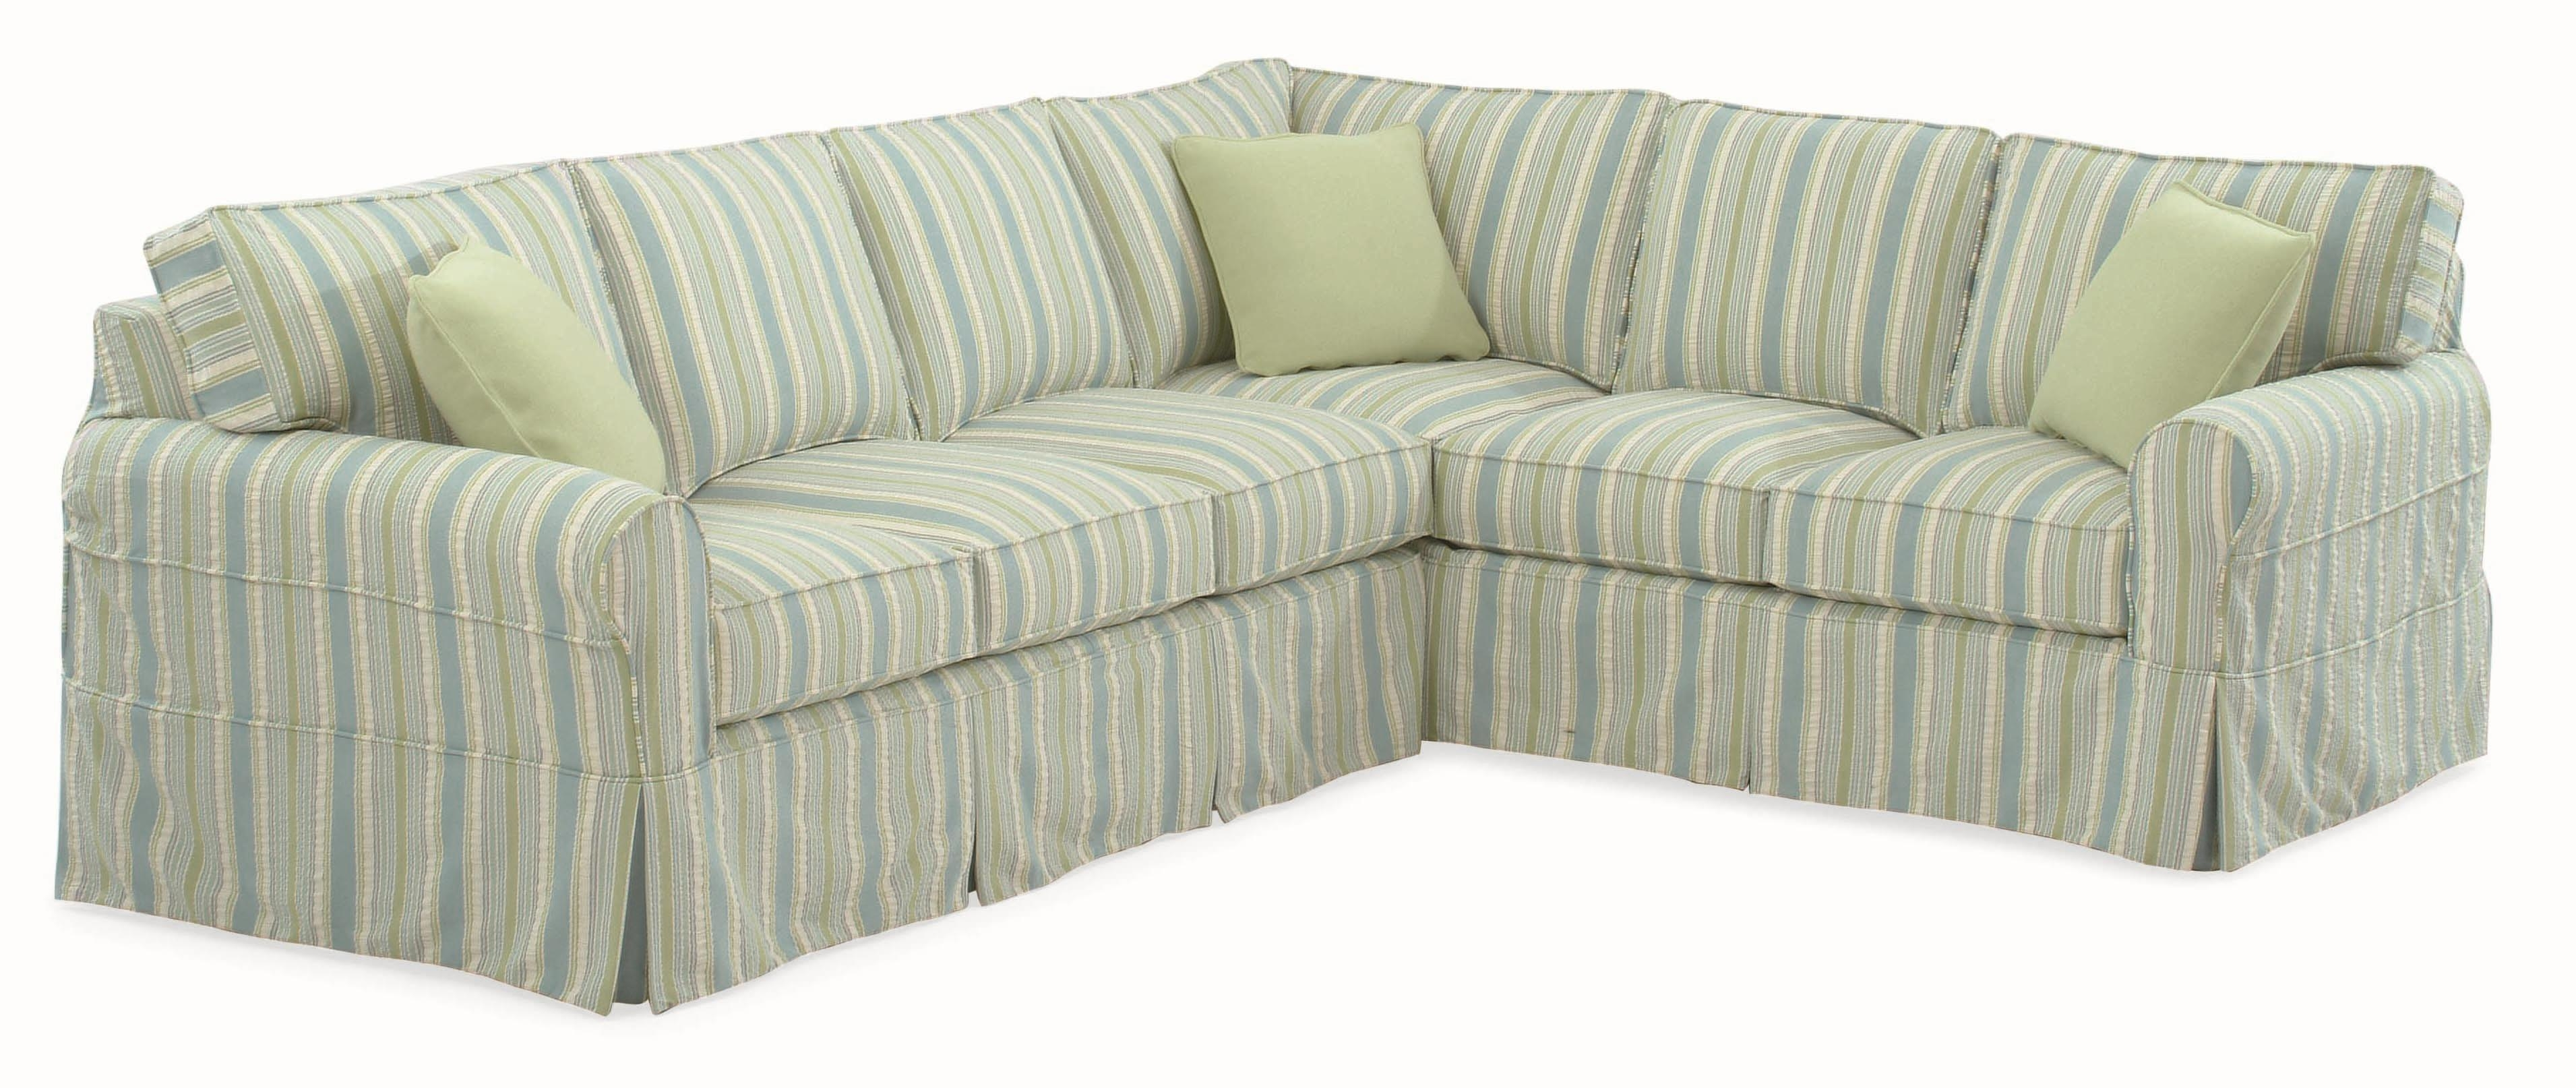 Featured Image of Braxton Culler Sofas